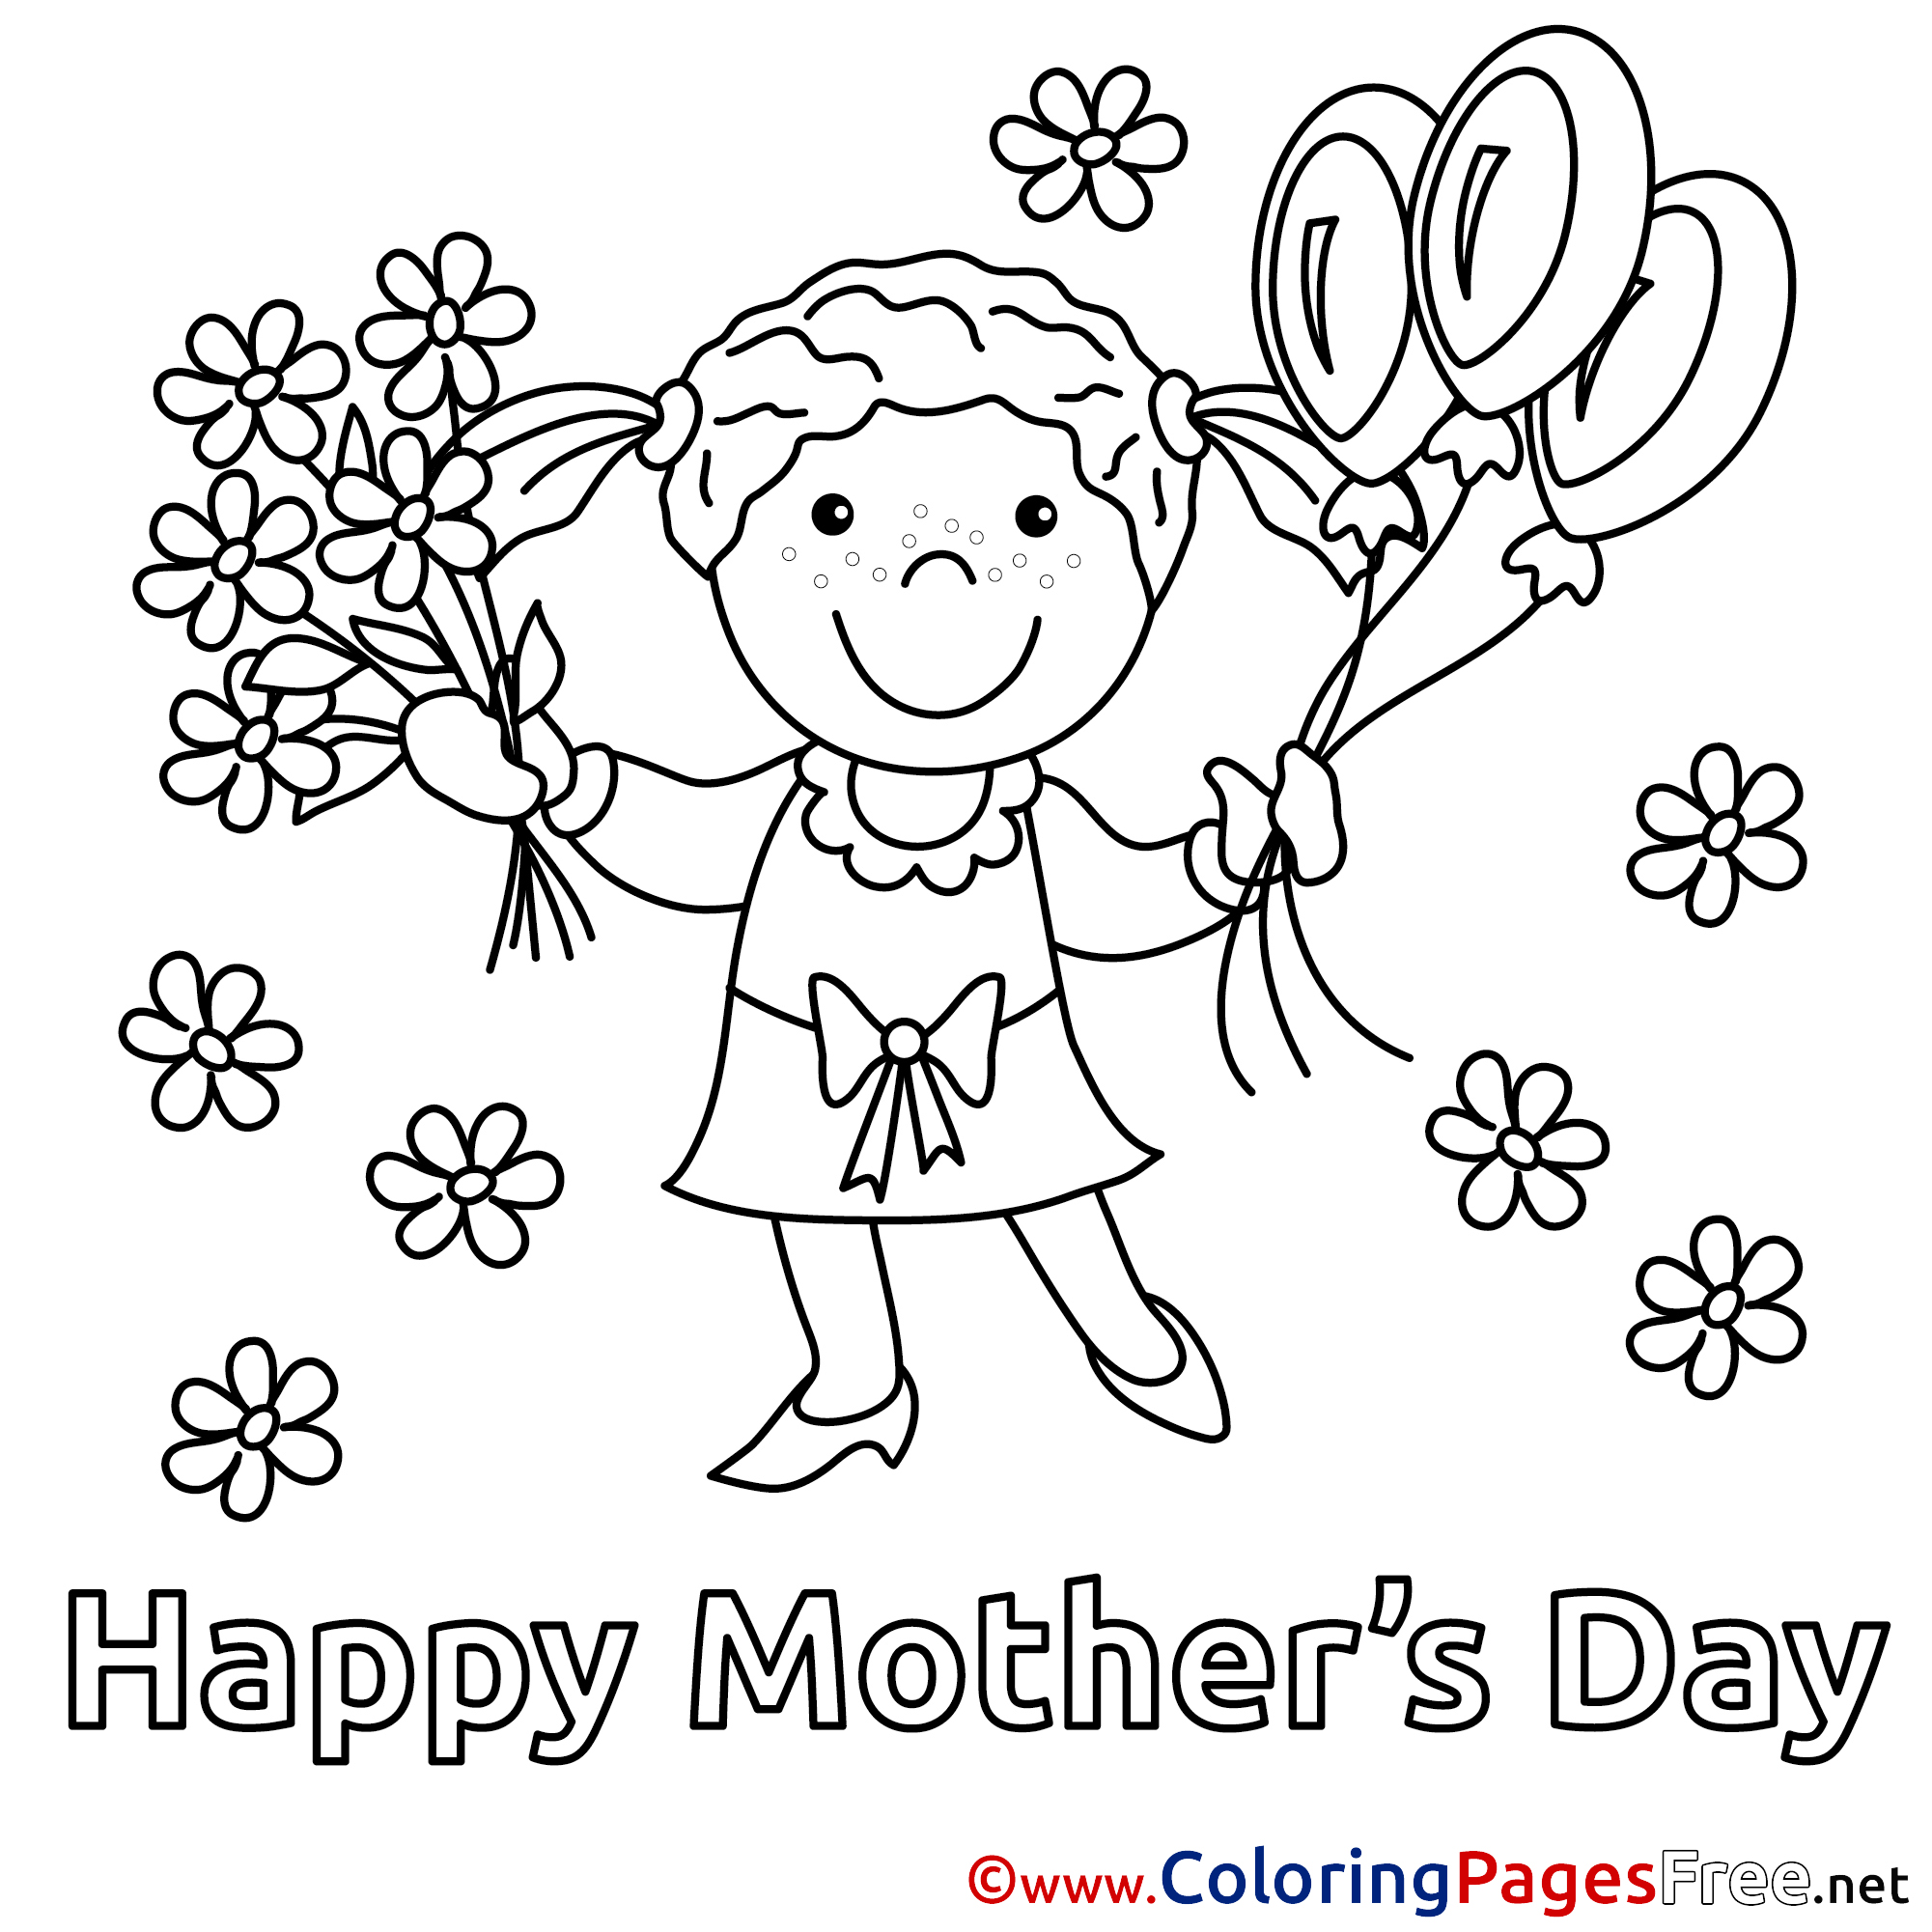 Bouquet Daughter Flowers Balloons Coloring Pages Mothers Day For Free